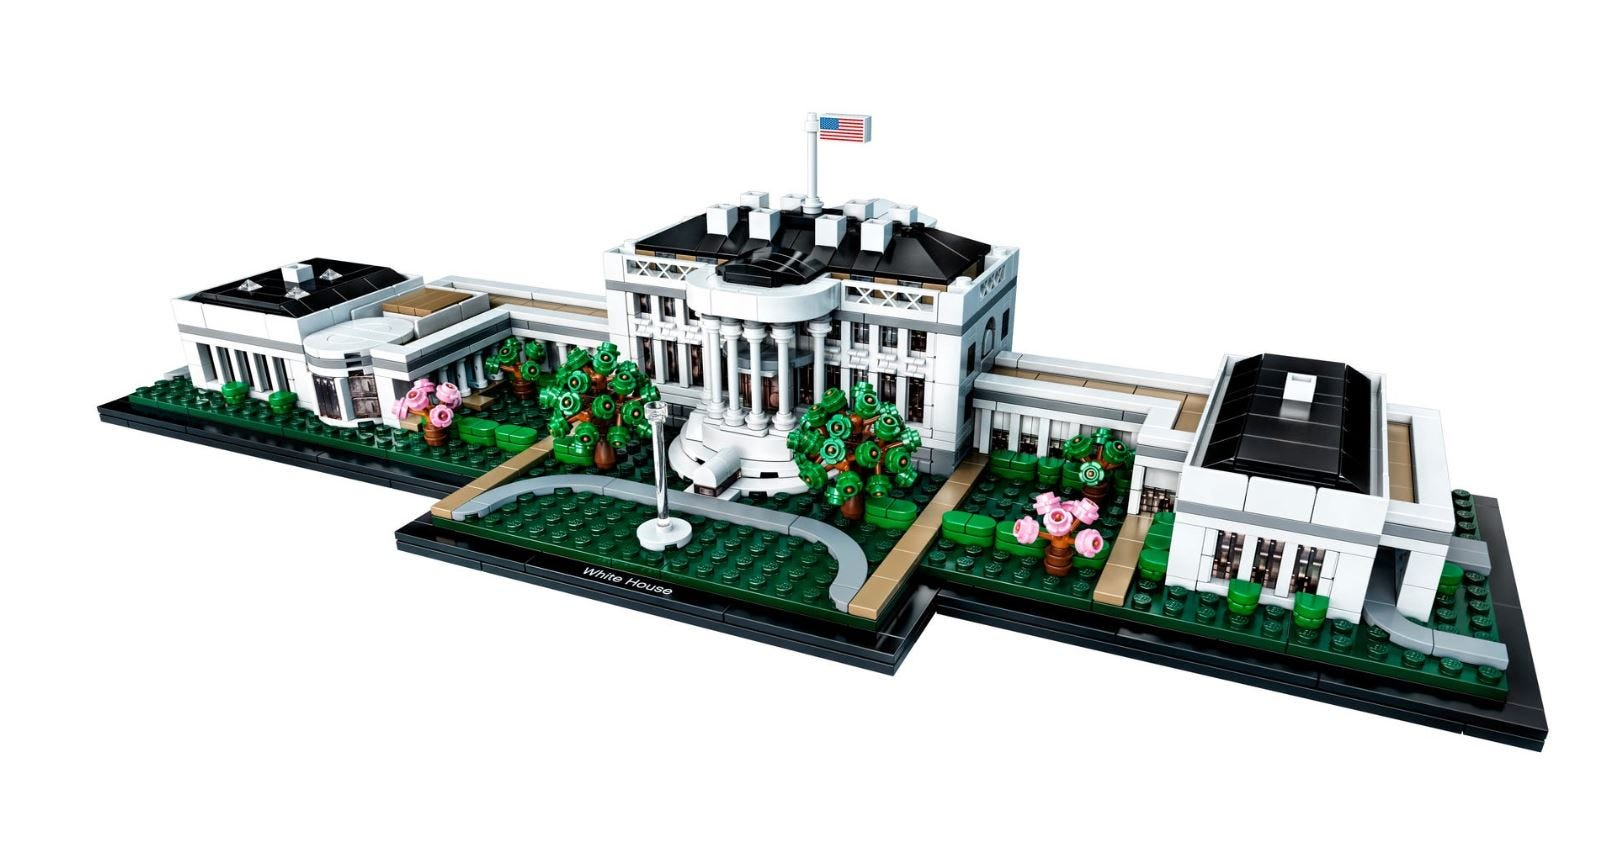 Lego pauses advertising for police and White House products  in response to events in the US